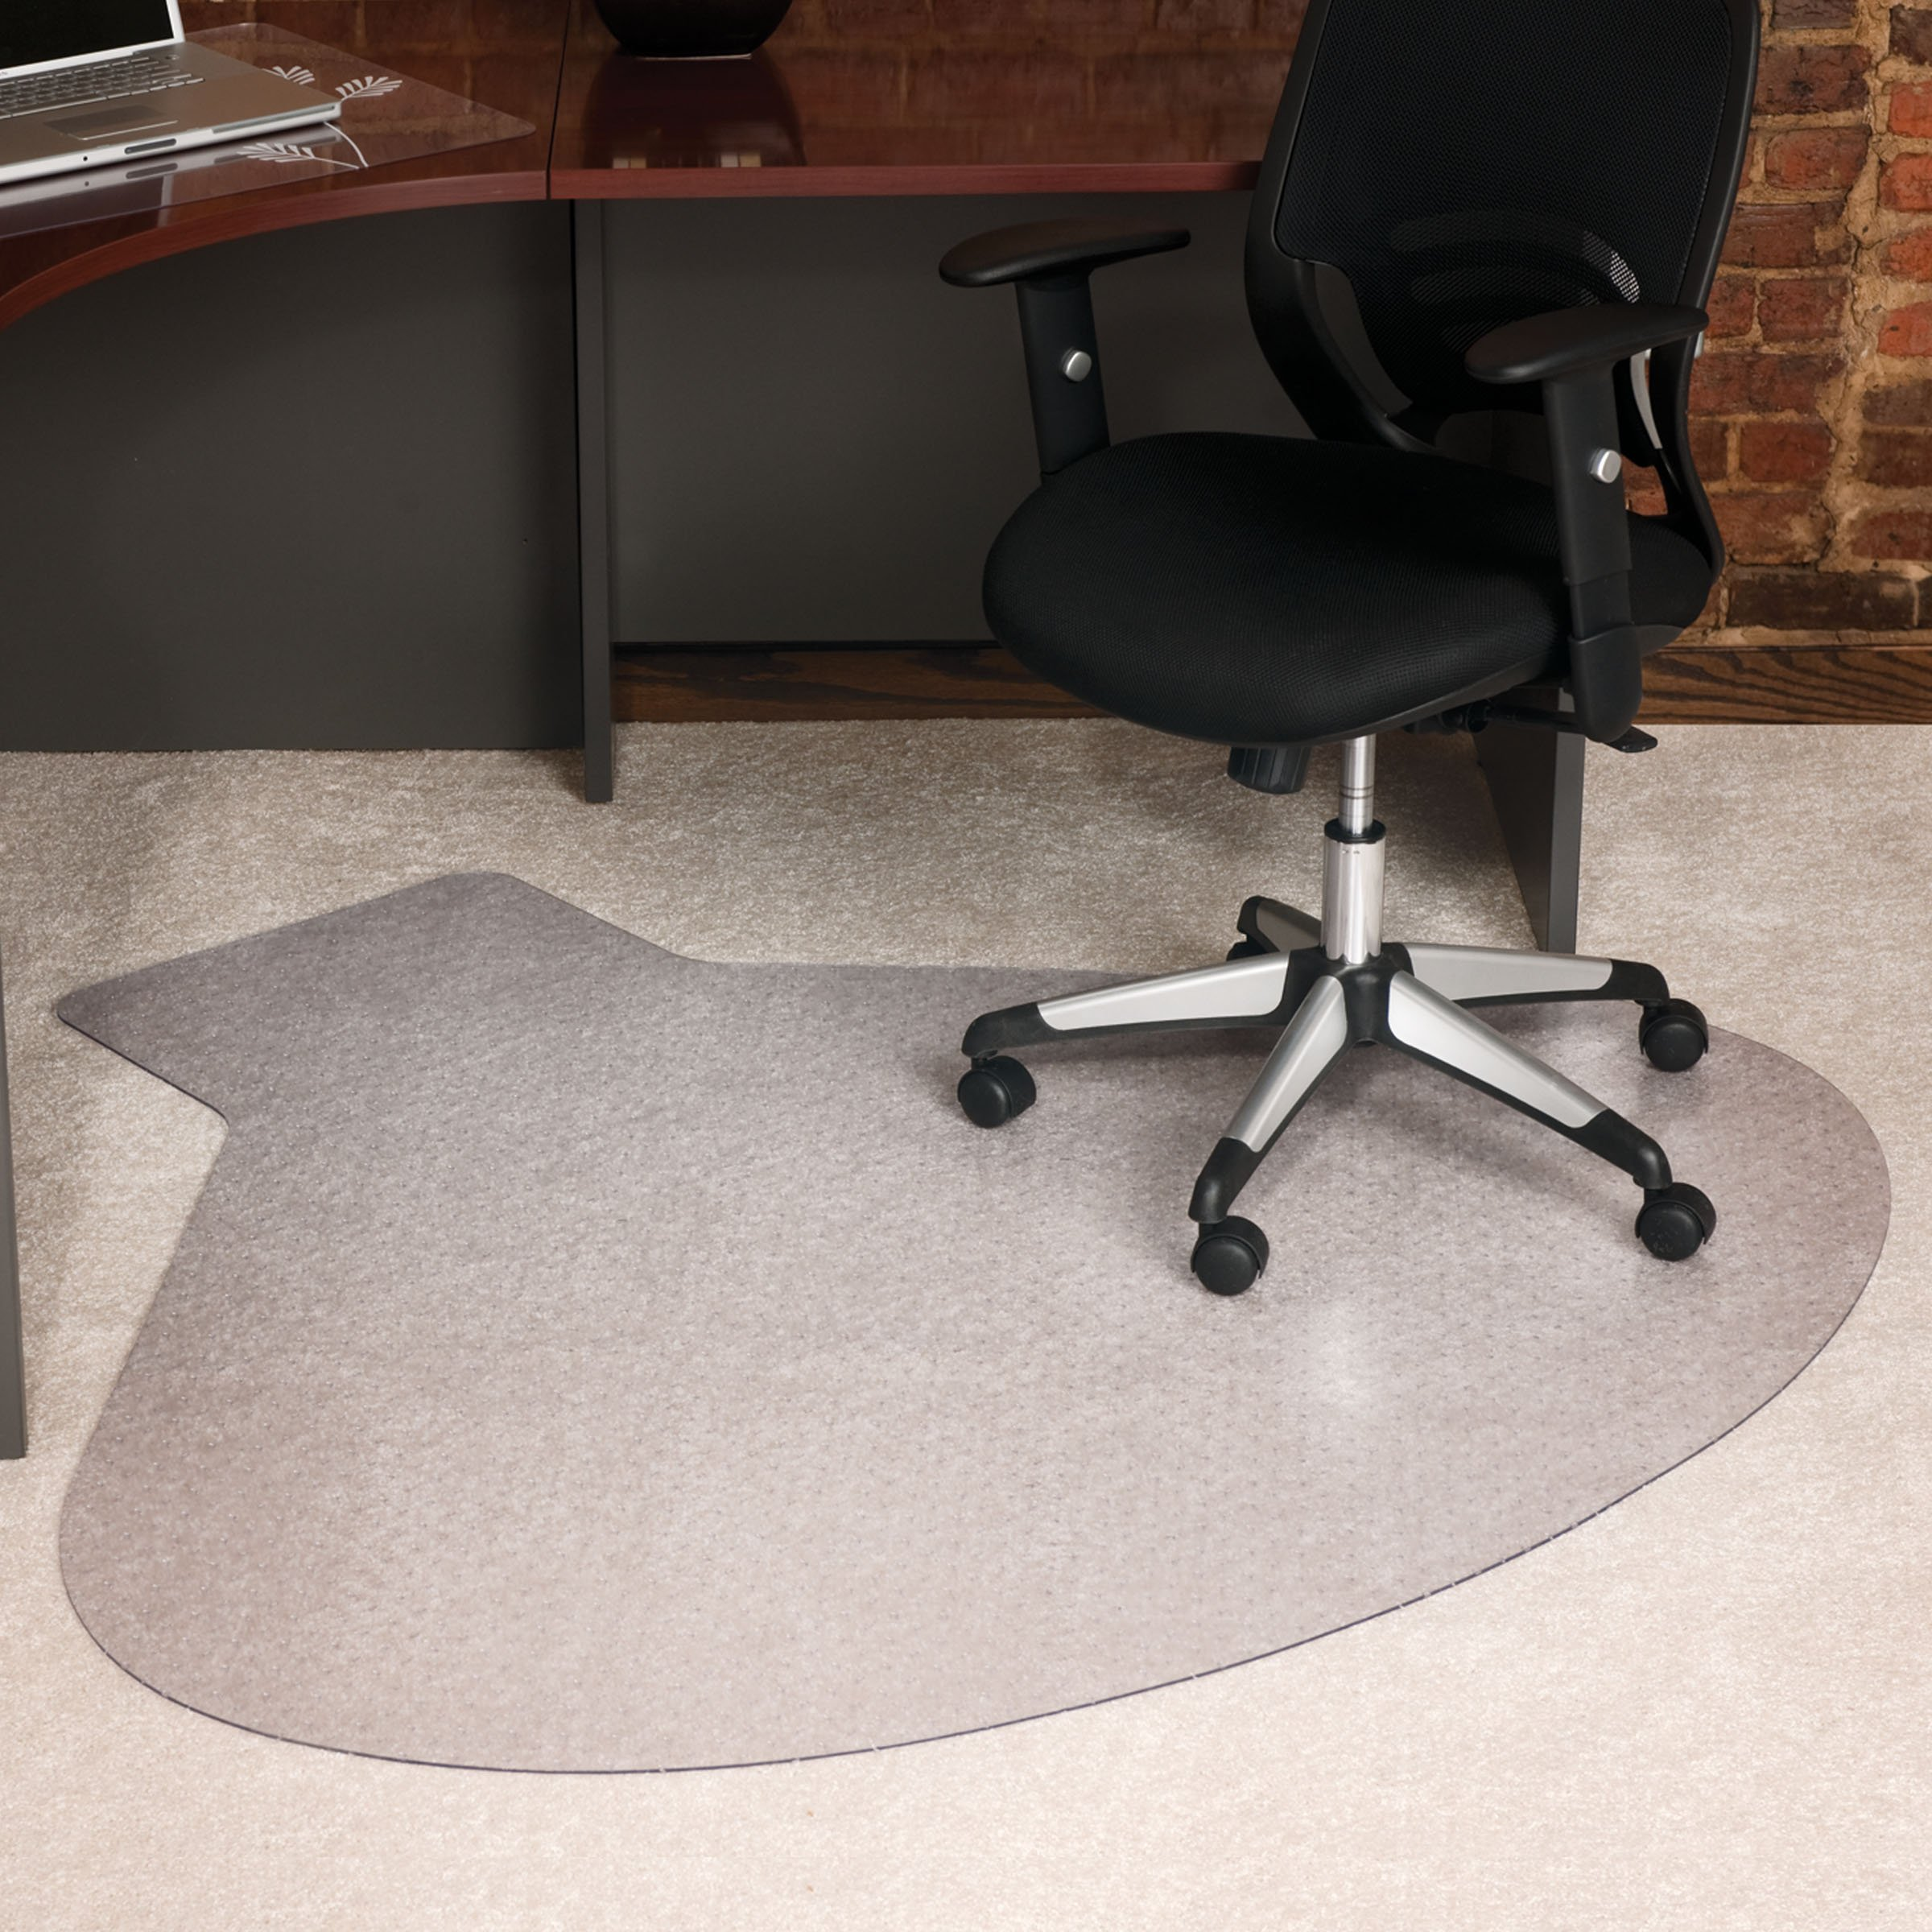 ES Robbins 122785 Medium Pile Carpet Chair Mat, 66''x60'', Clear by ES Robbins